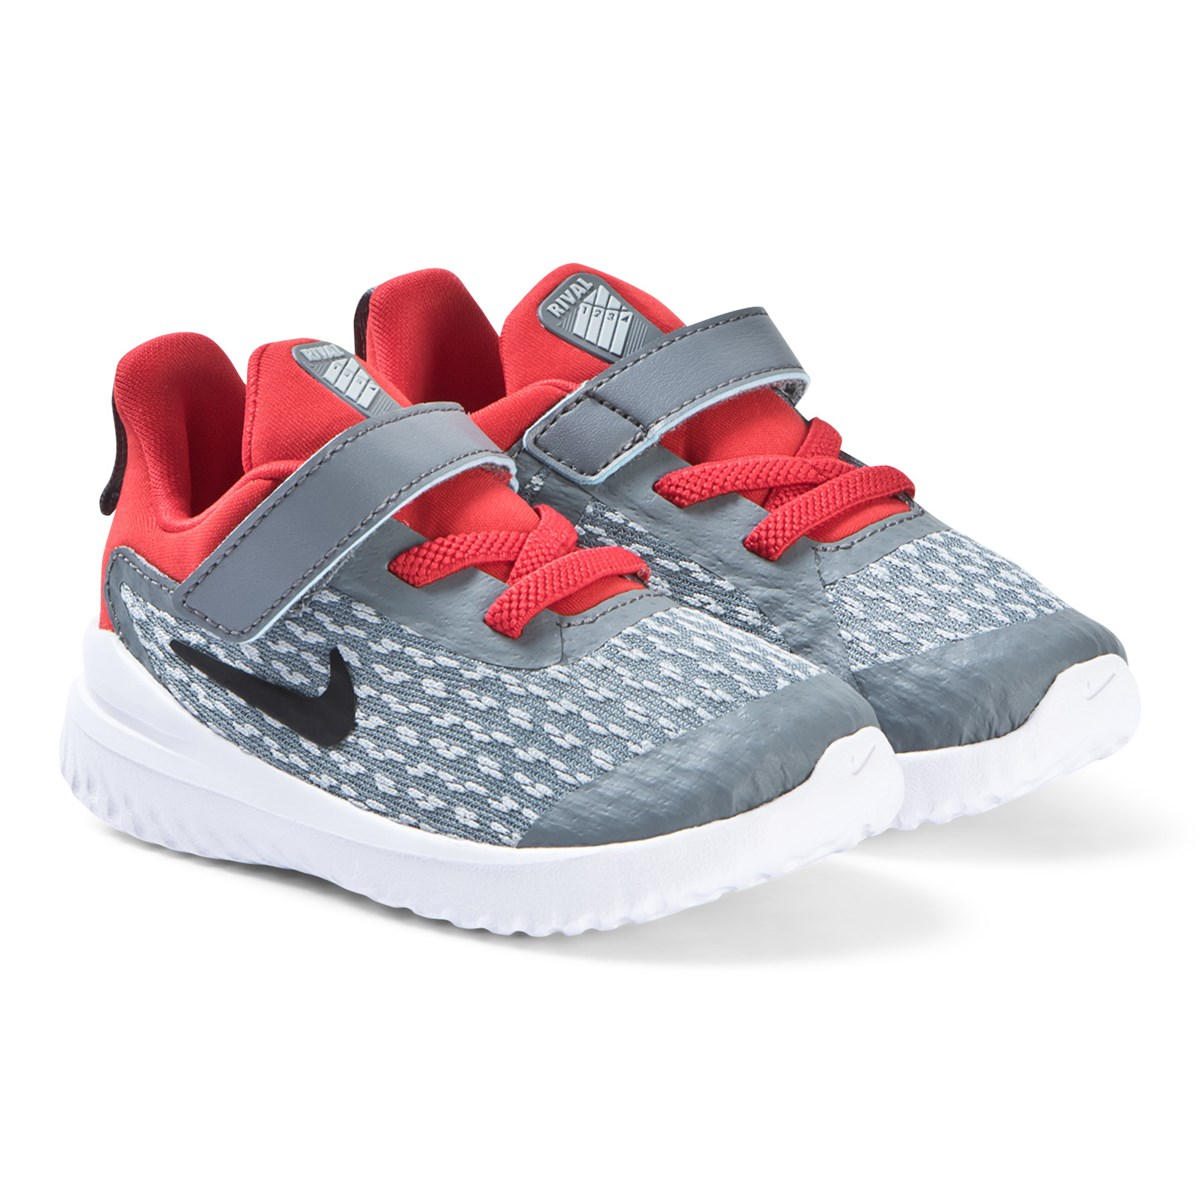 Infant Sneakers Nike Cool Grey Rival Infant Sneakers Babyshop